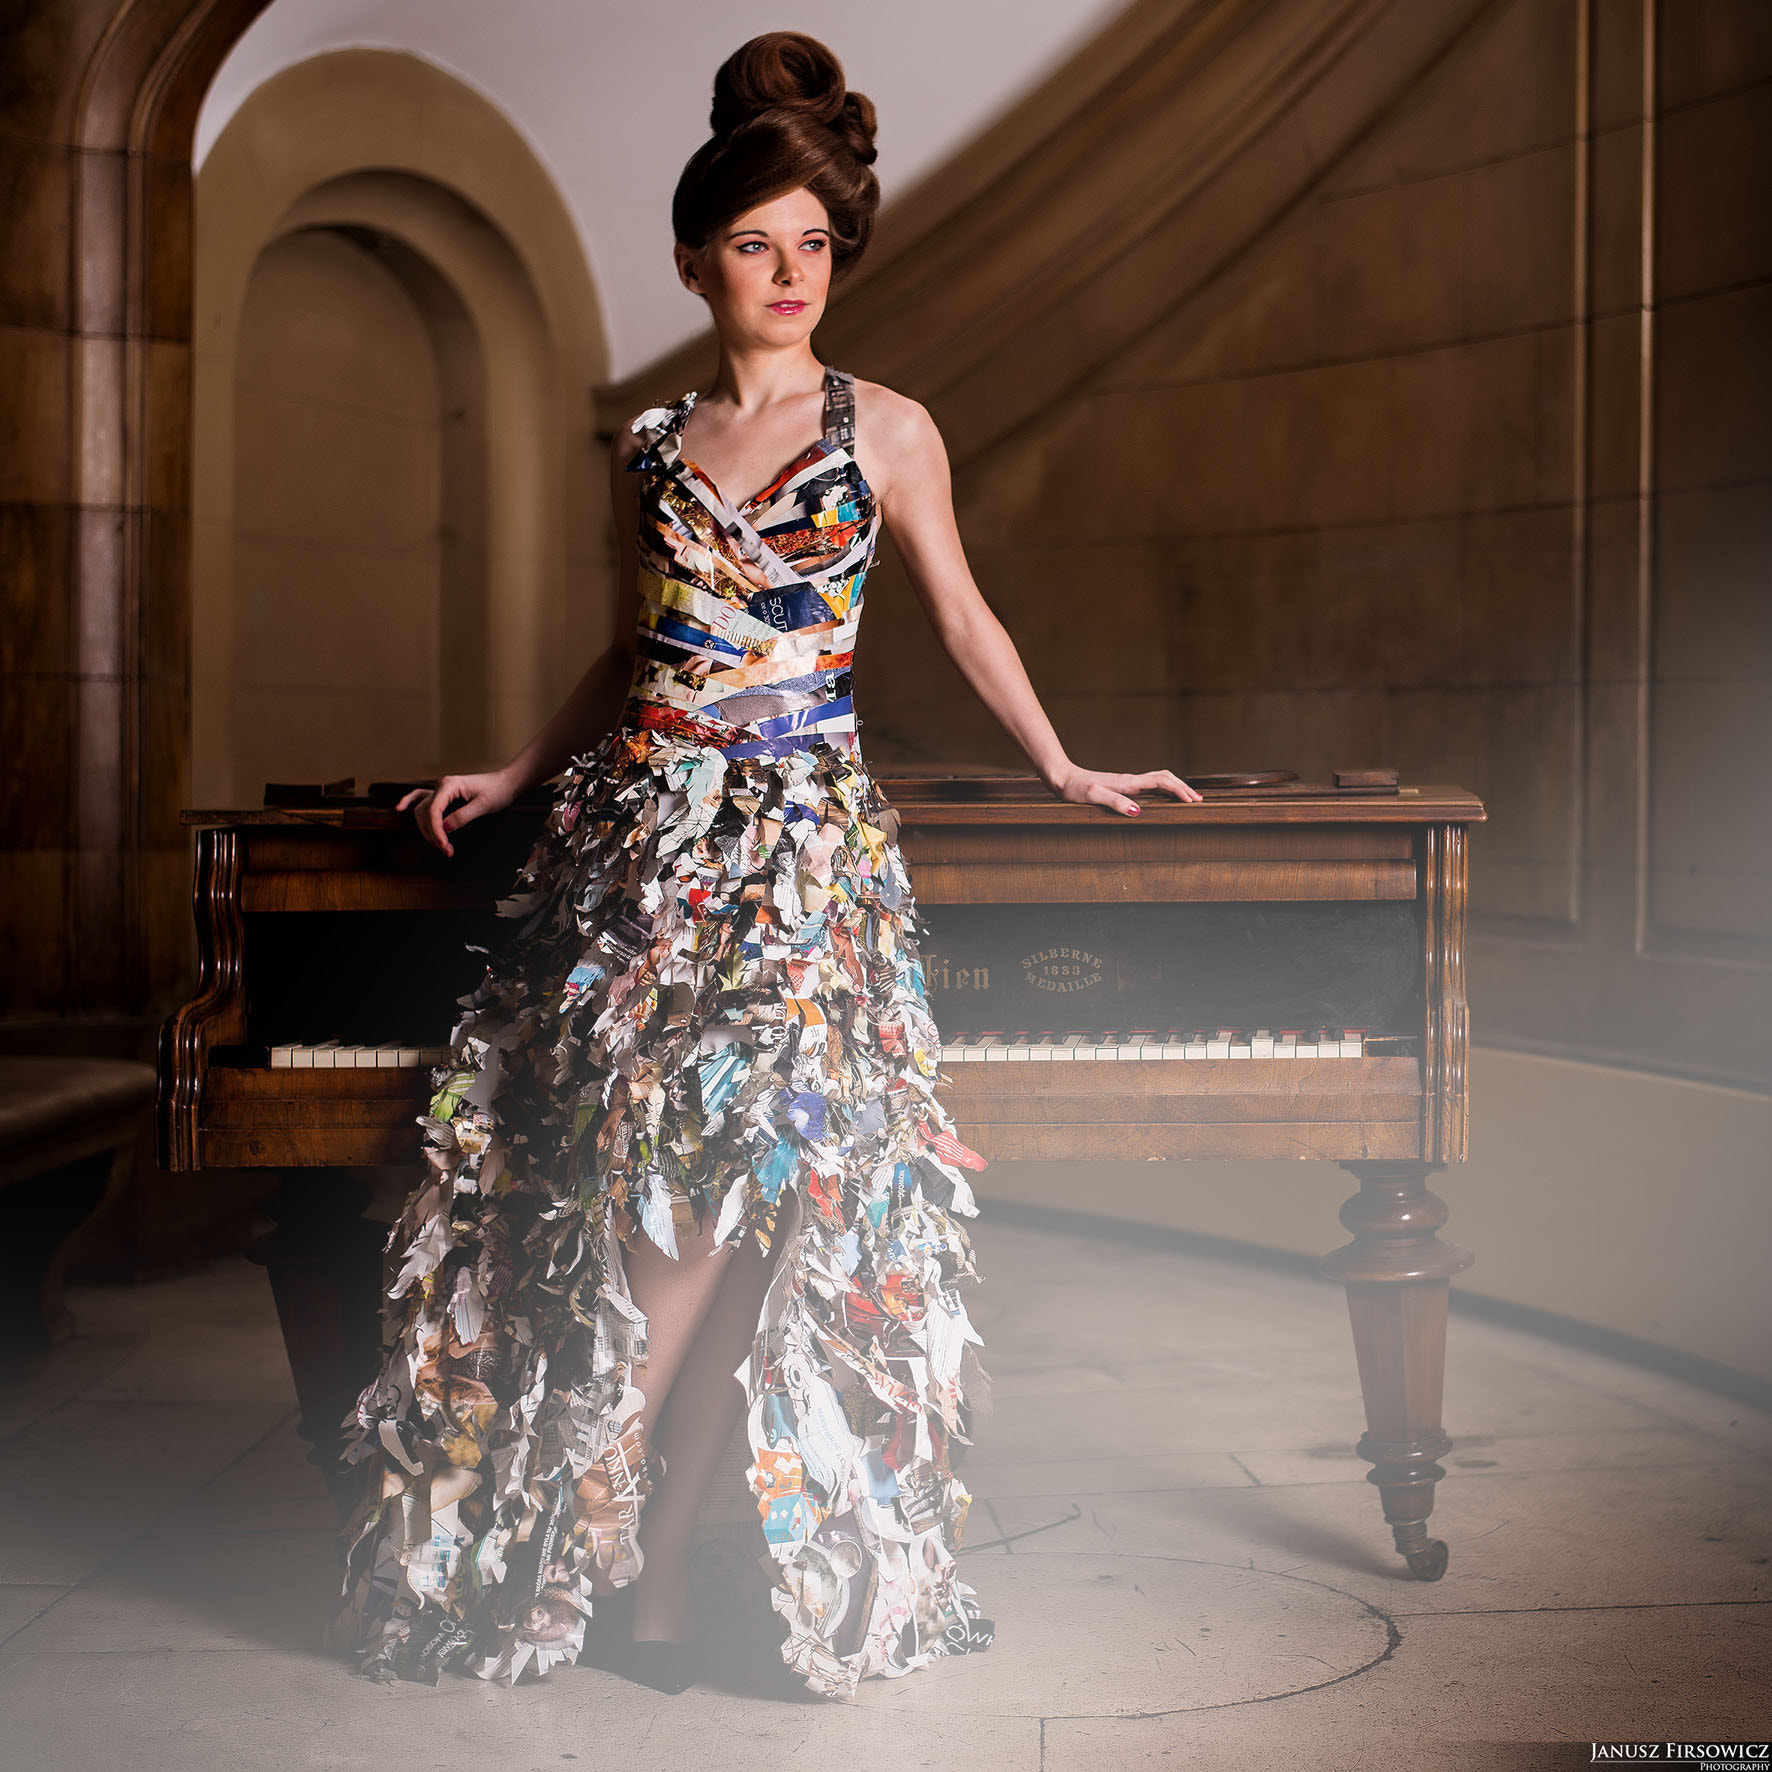 Photograph Newspaper dress by Janusz Firsowicz on 500px